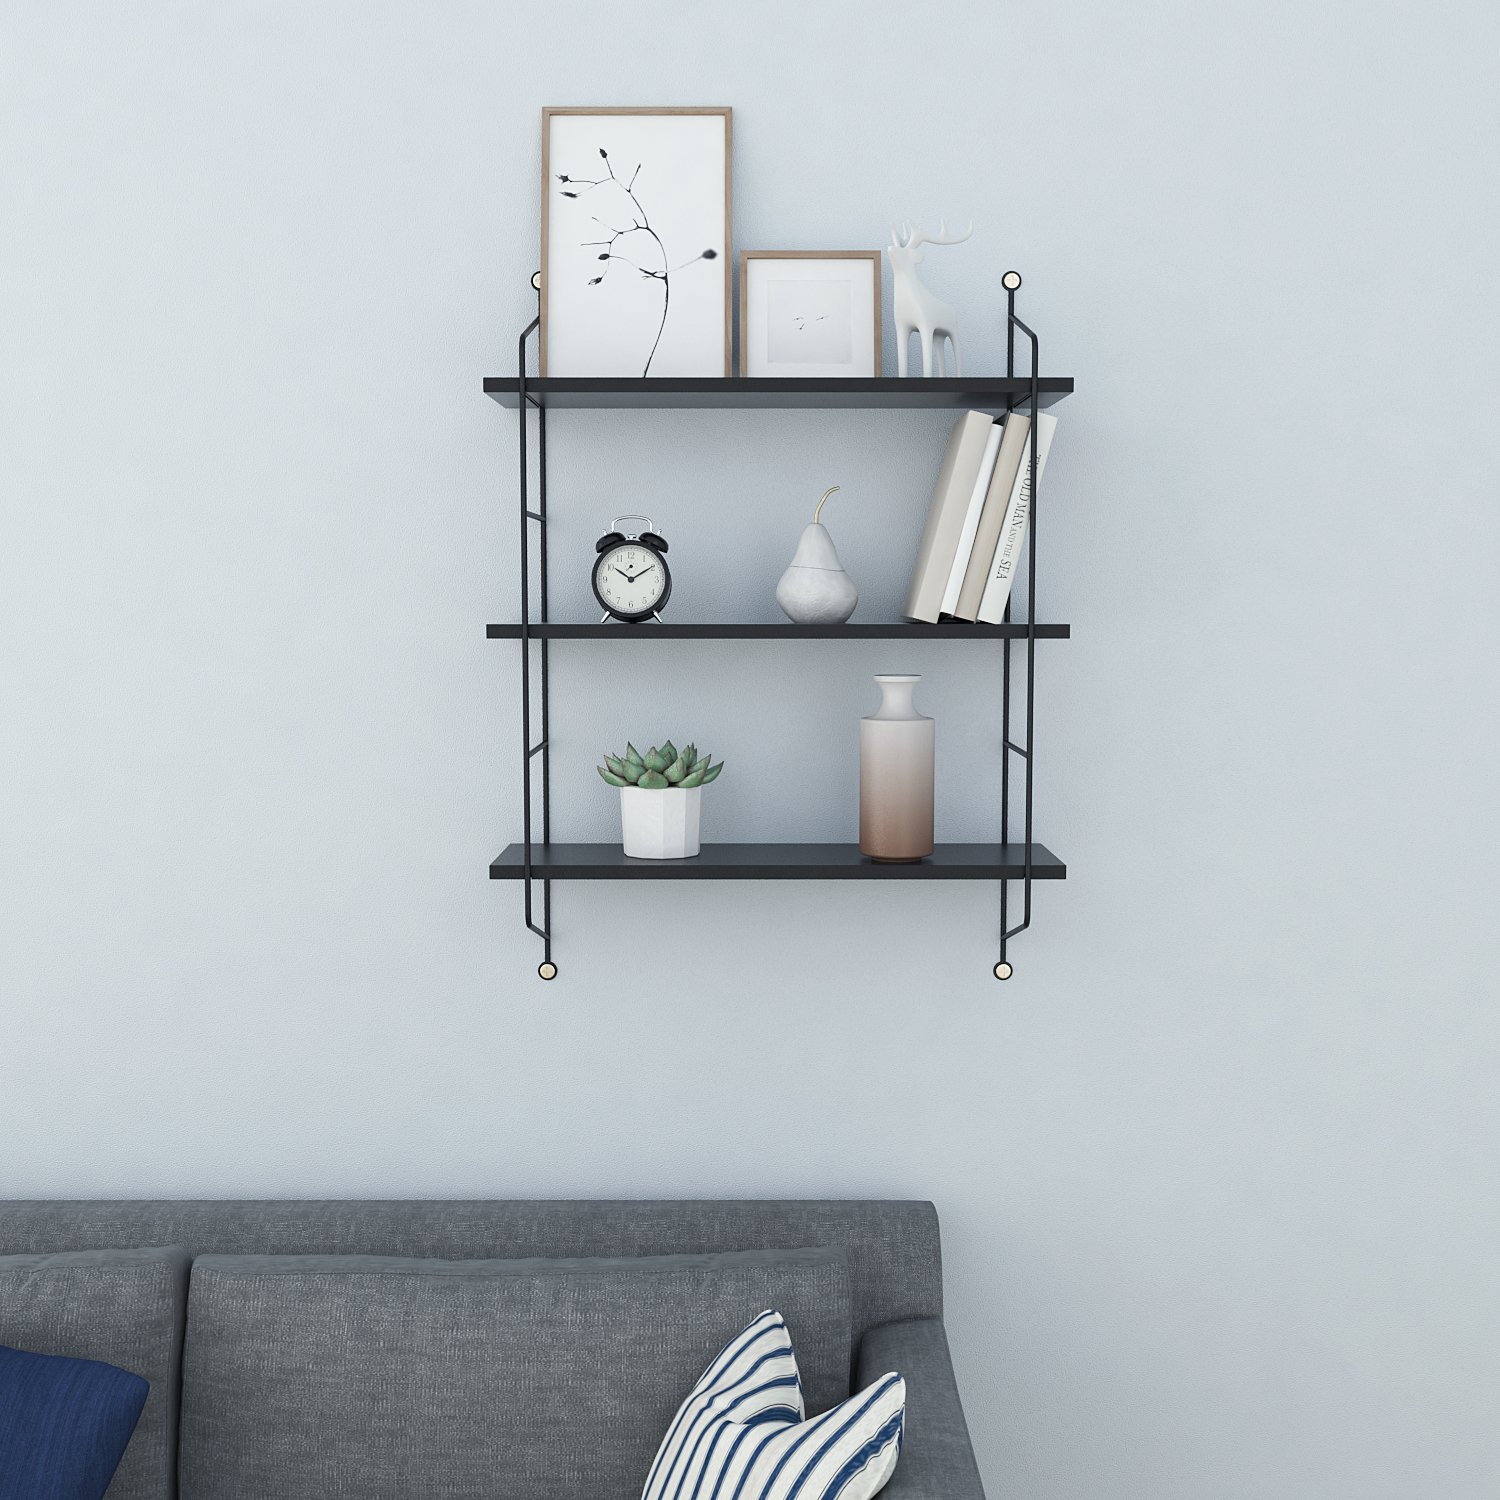 flyerstoy wall mounted floating shelves tiers display and ture frames ledge wood storage for modern home decorative black rustic simple coat tree lino underlay shelf corner